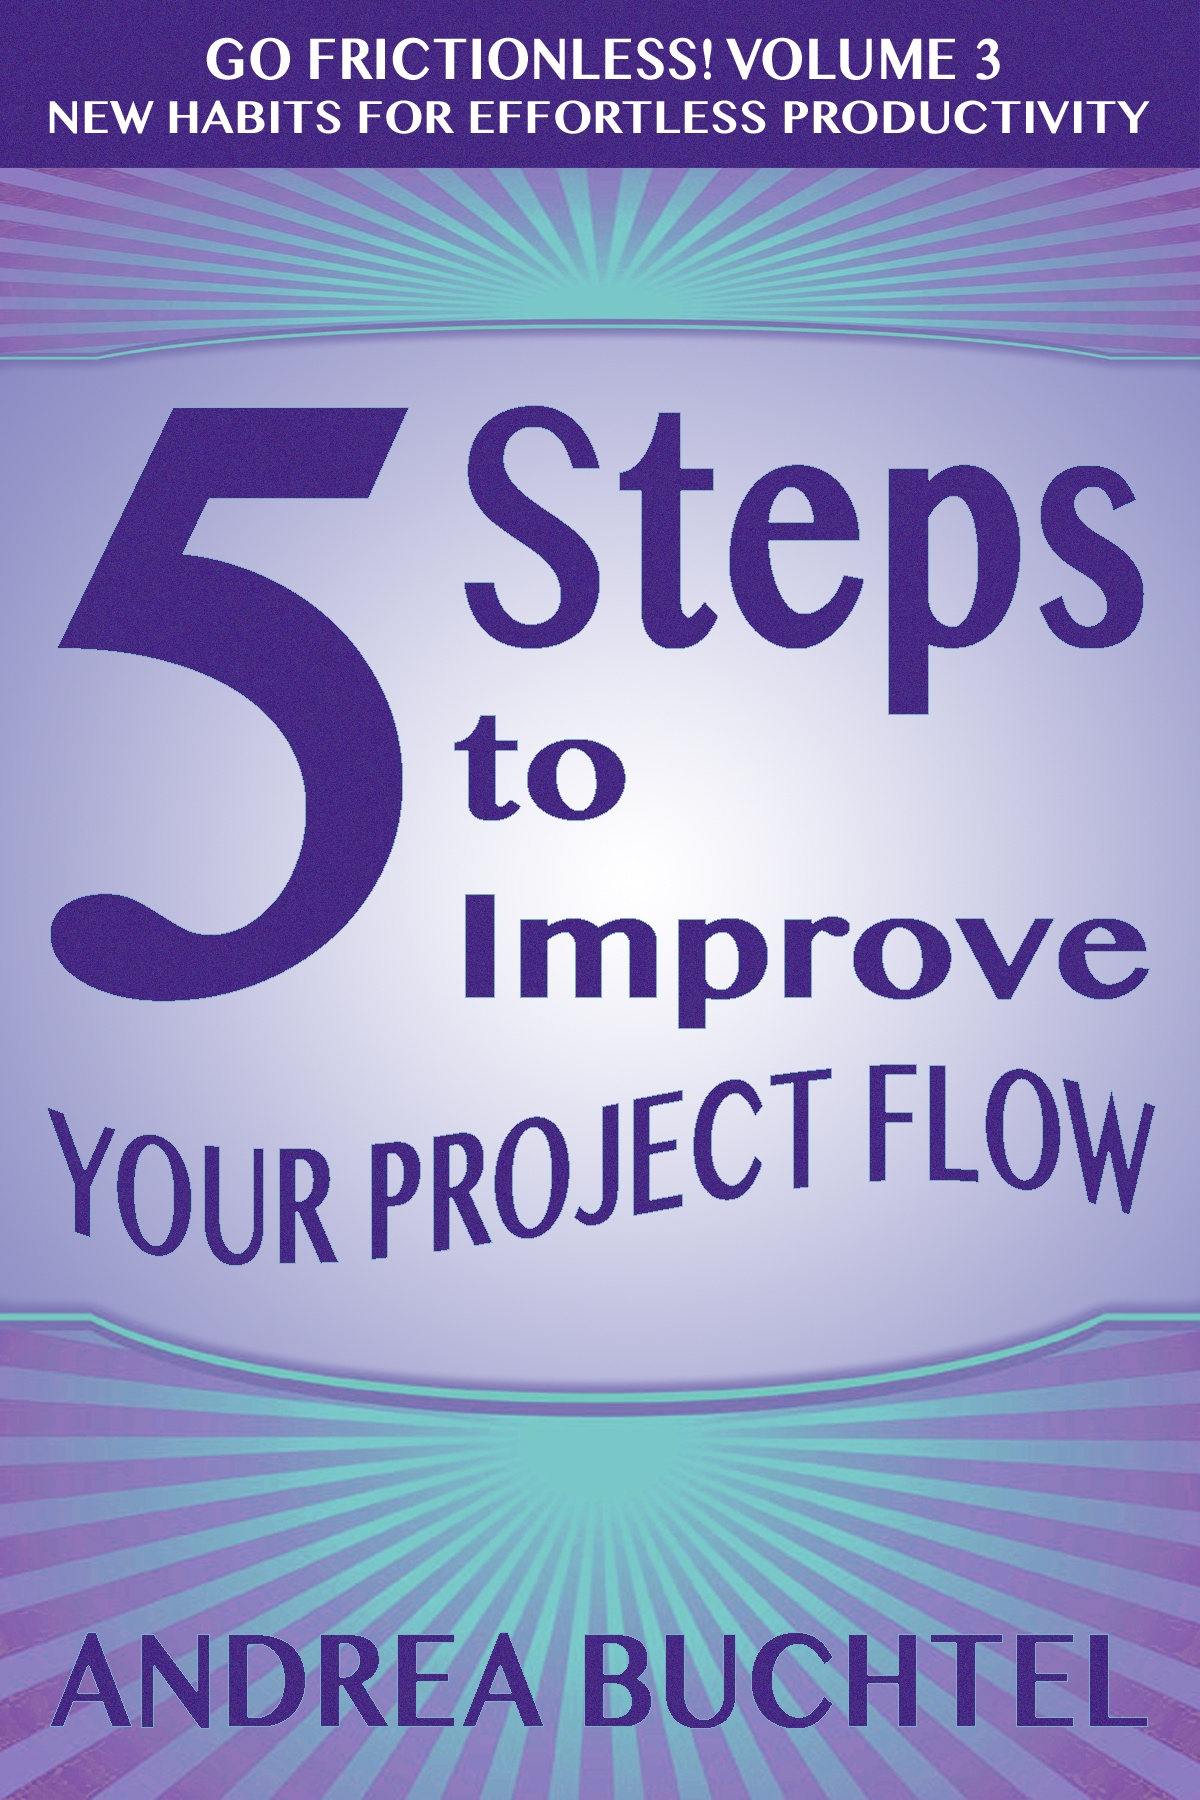 Free Book Vol 2: 5 Steps To Improve Your Paperwork Flow